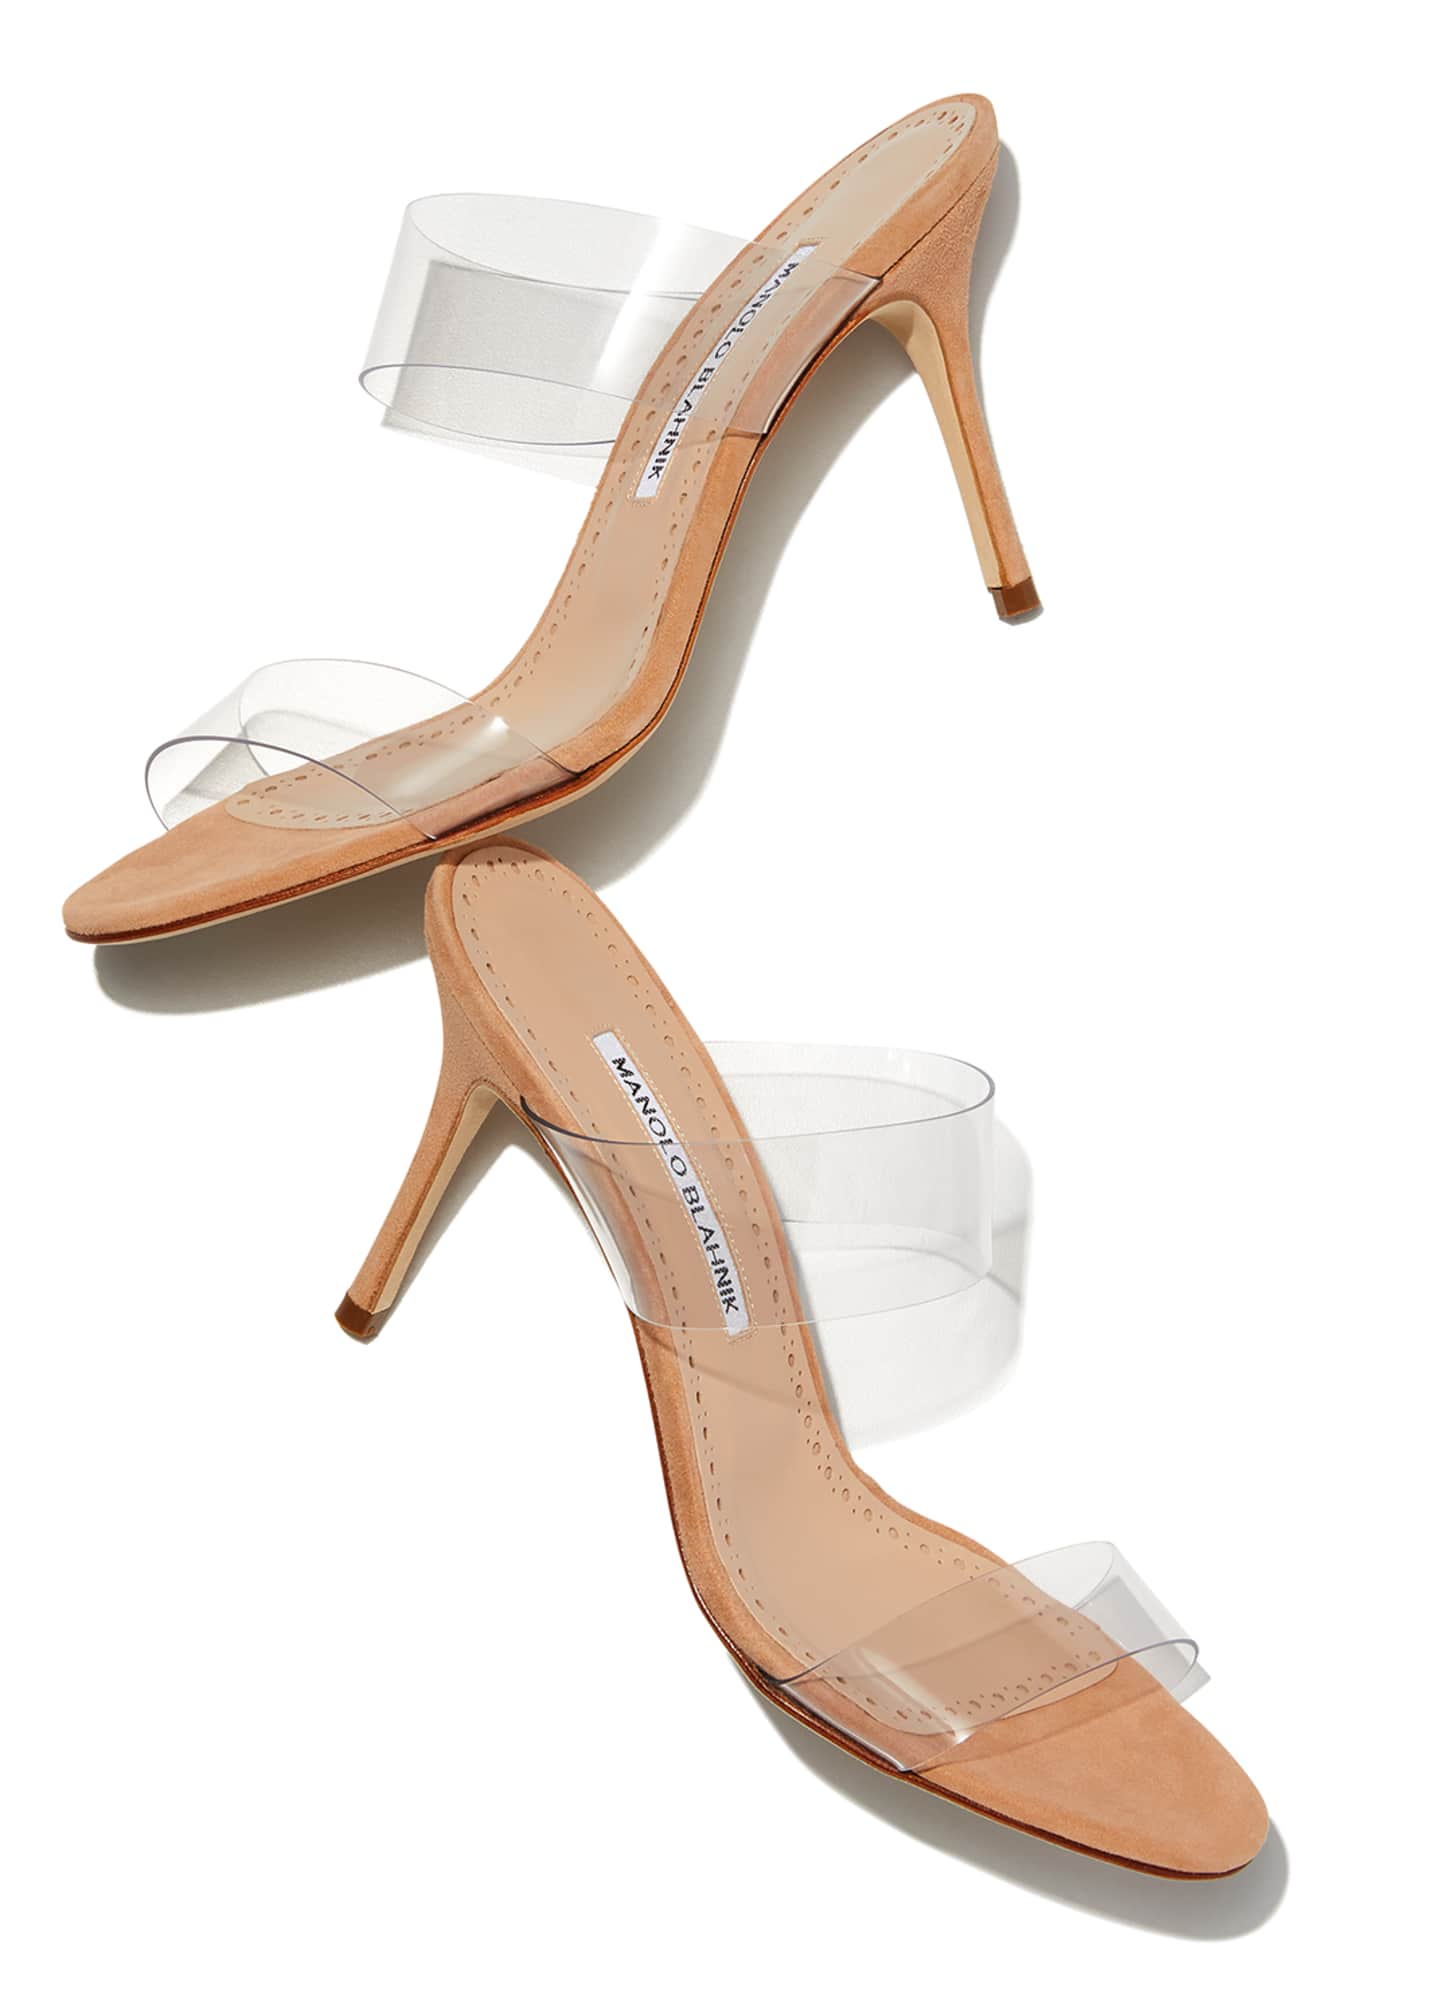 Image 2 of 6: Scolto PVC Two-Strap Sandals